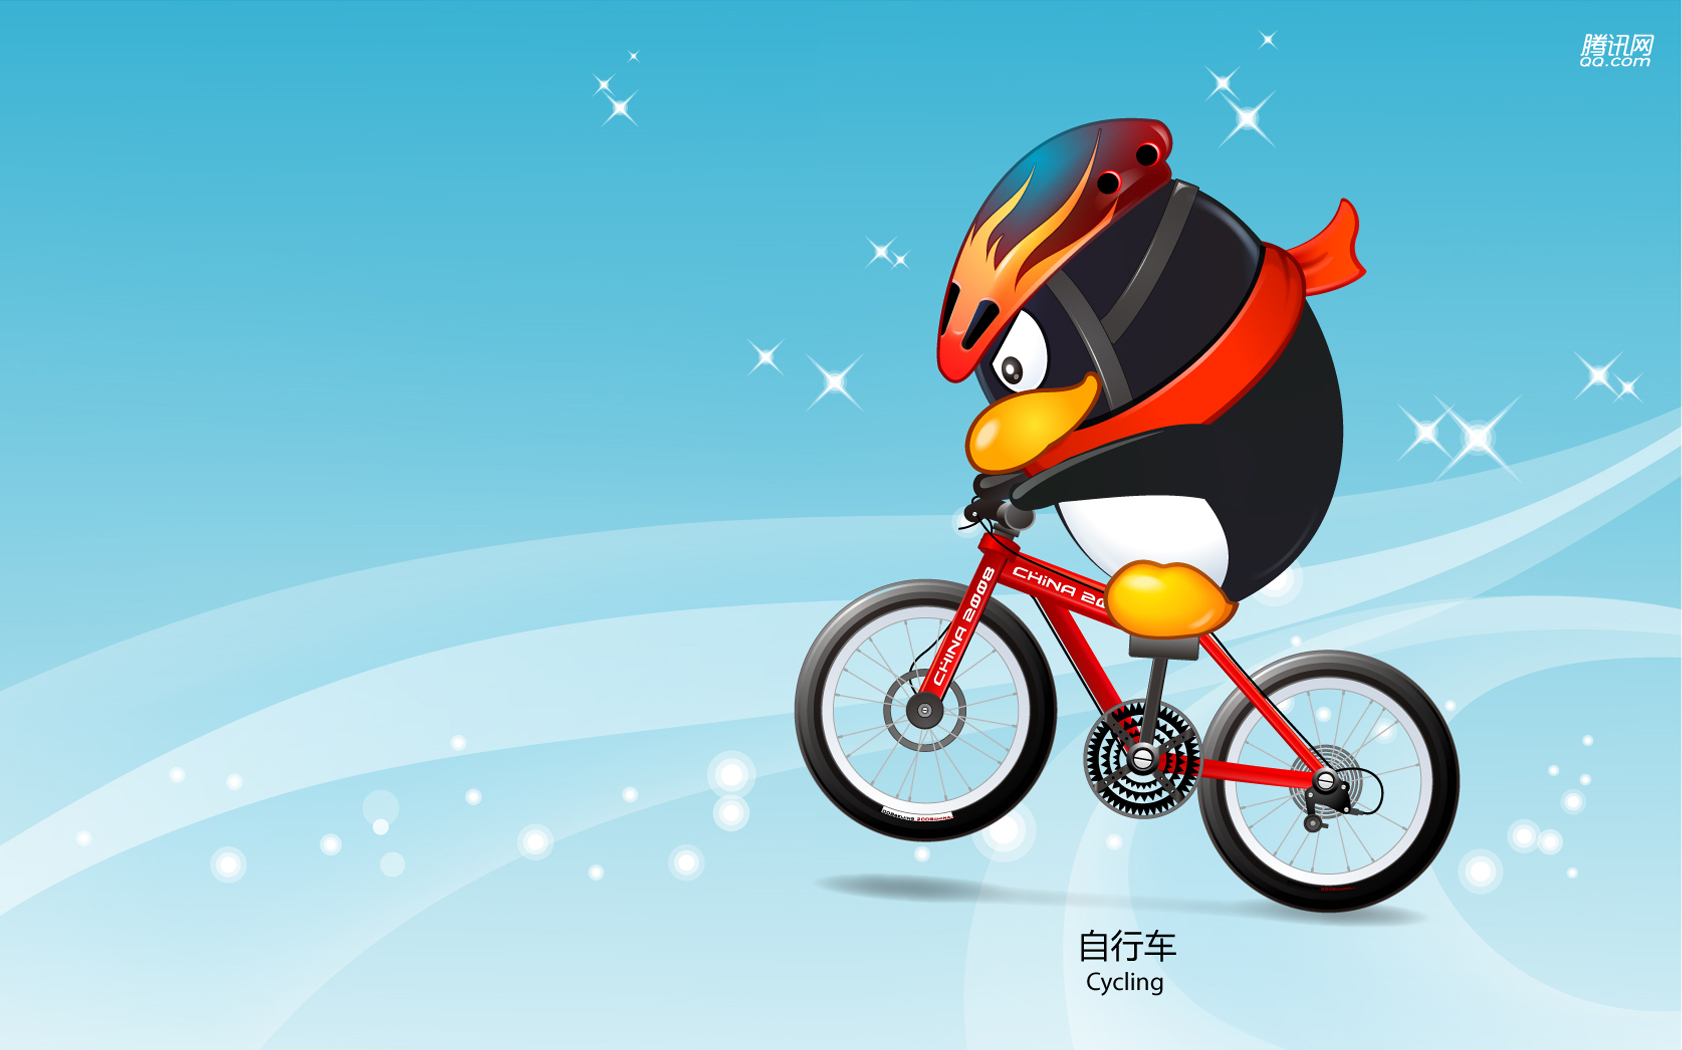 QQ Games Wallpapers 15553